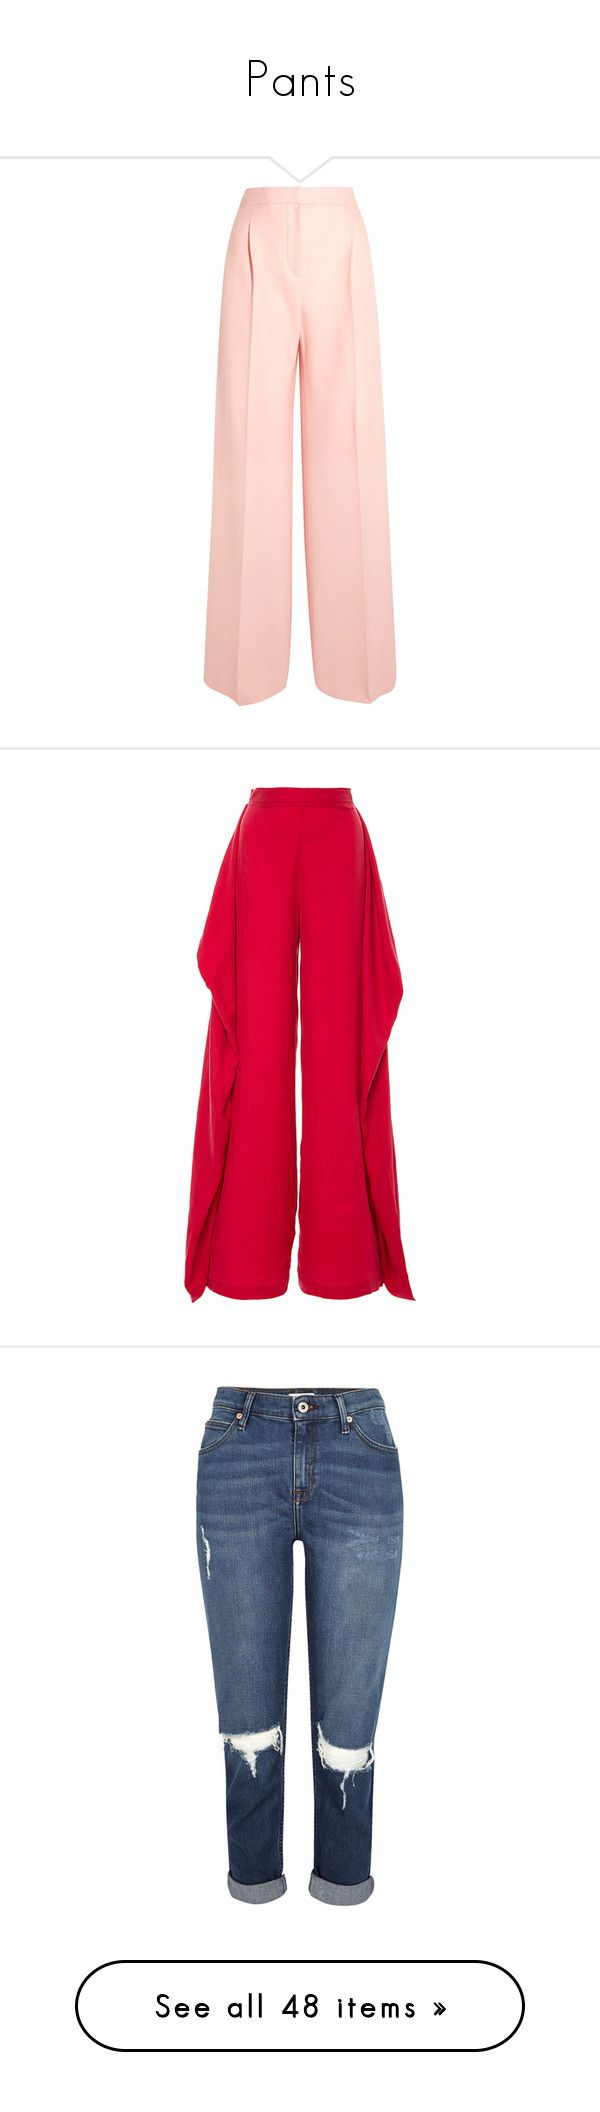 """""""Pants"""" by isthelastofus ❤ liked on Polyvore featuring pants, pastel pants, pink wide leg pants, woolen pants, maxmara pants, wide leg pants, paper london, pink, paper pants and high waisted trousers"""